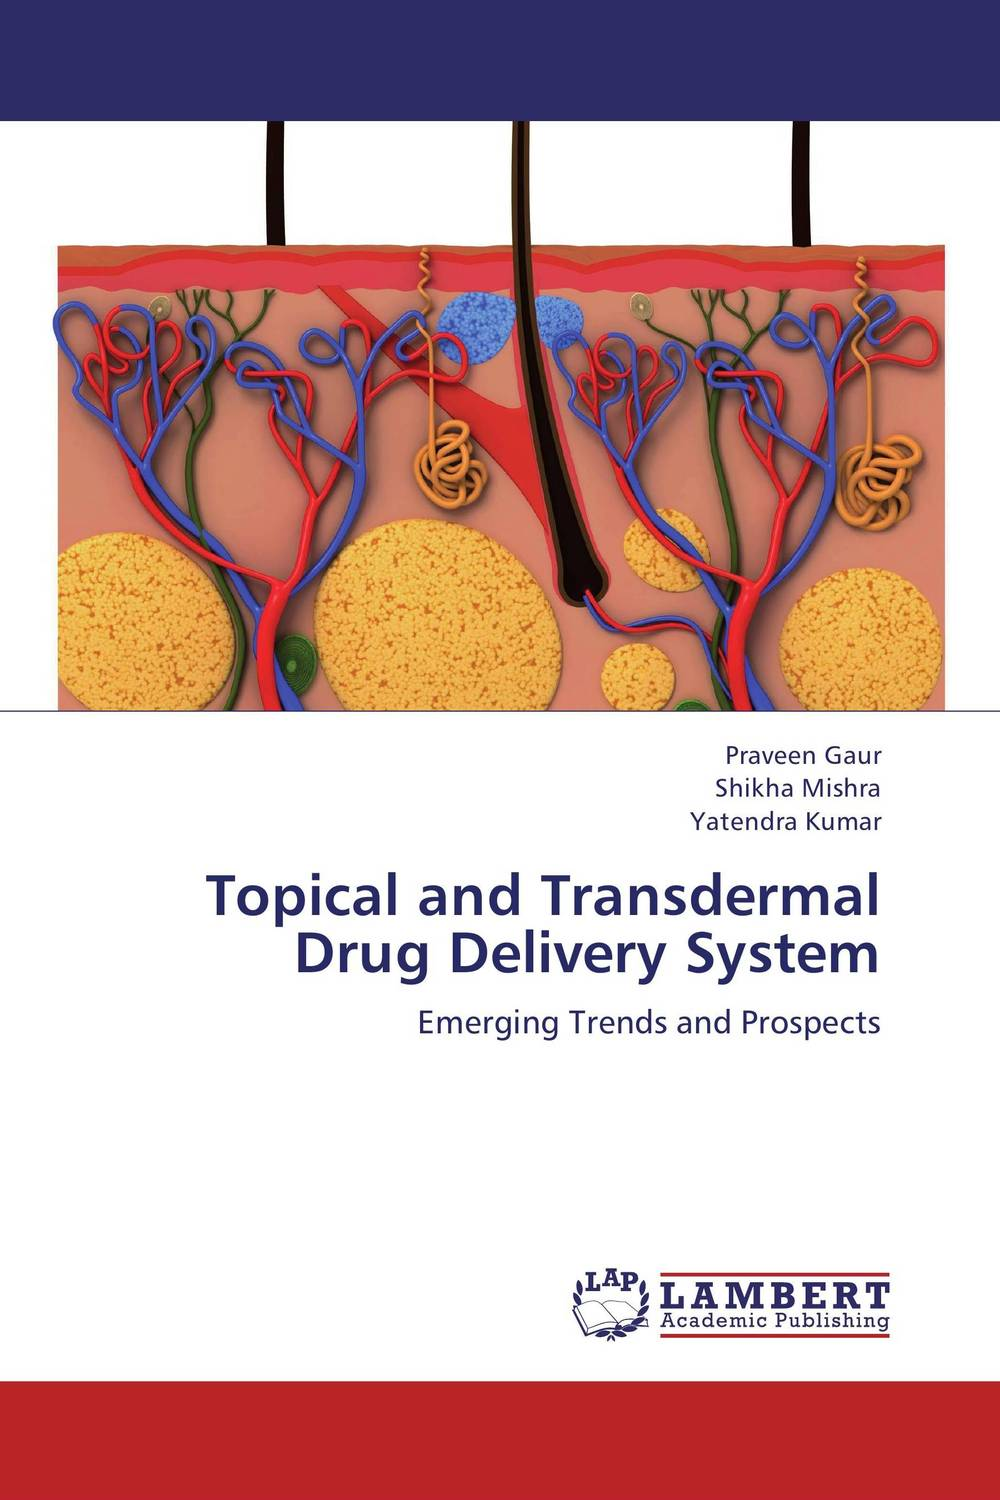 Topical and Transdermal Drug Delivery System shubhini saraf a k srivastava and gyanendra singh niosome based delivery of an antitubercular drug